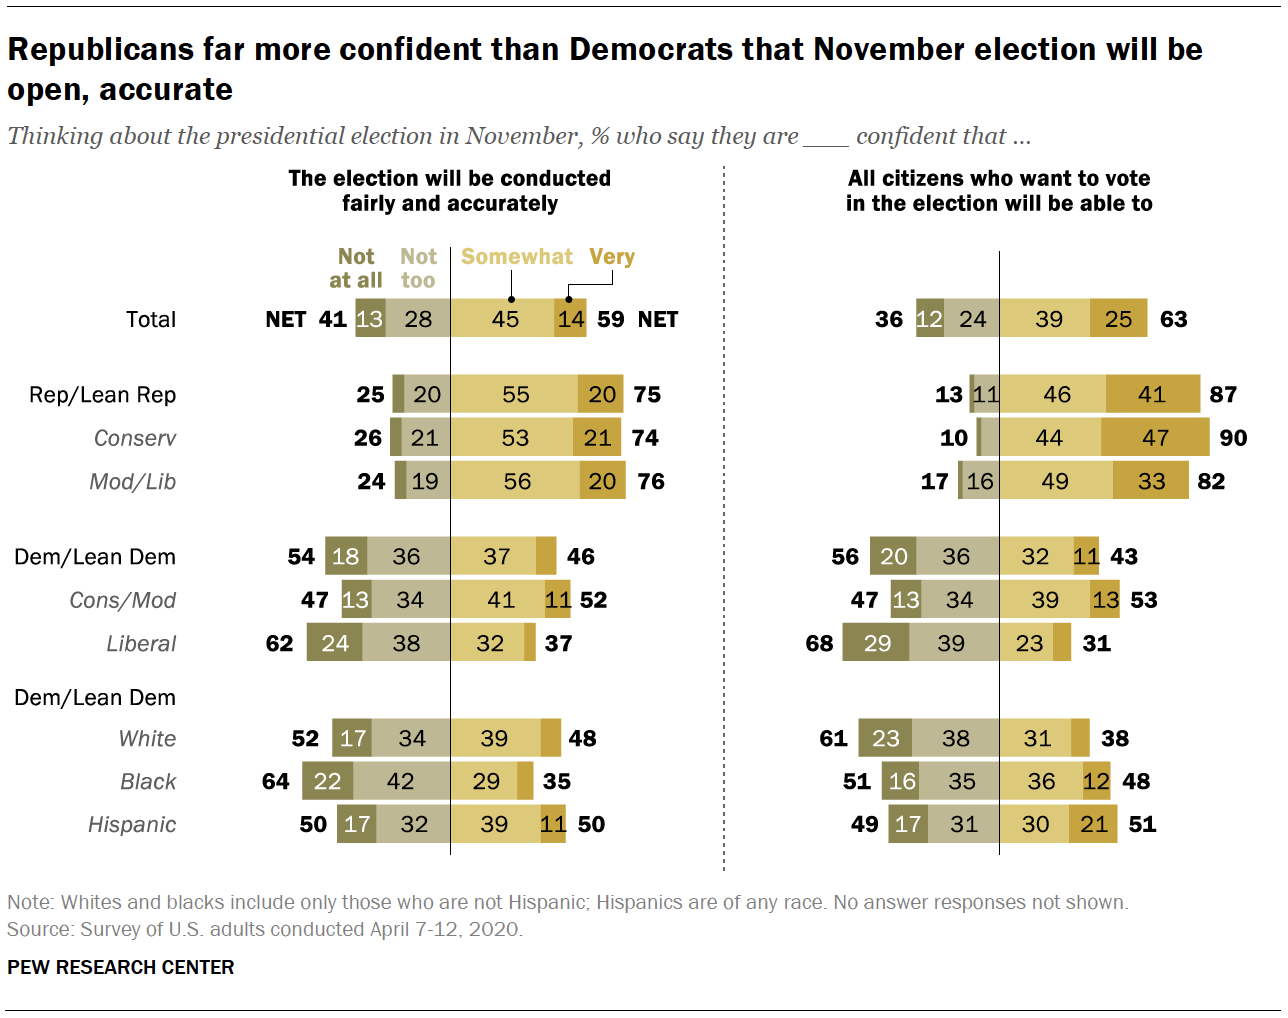 Republicans far more confident than Democrats that November election will be open, accurate